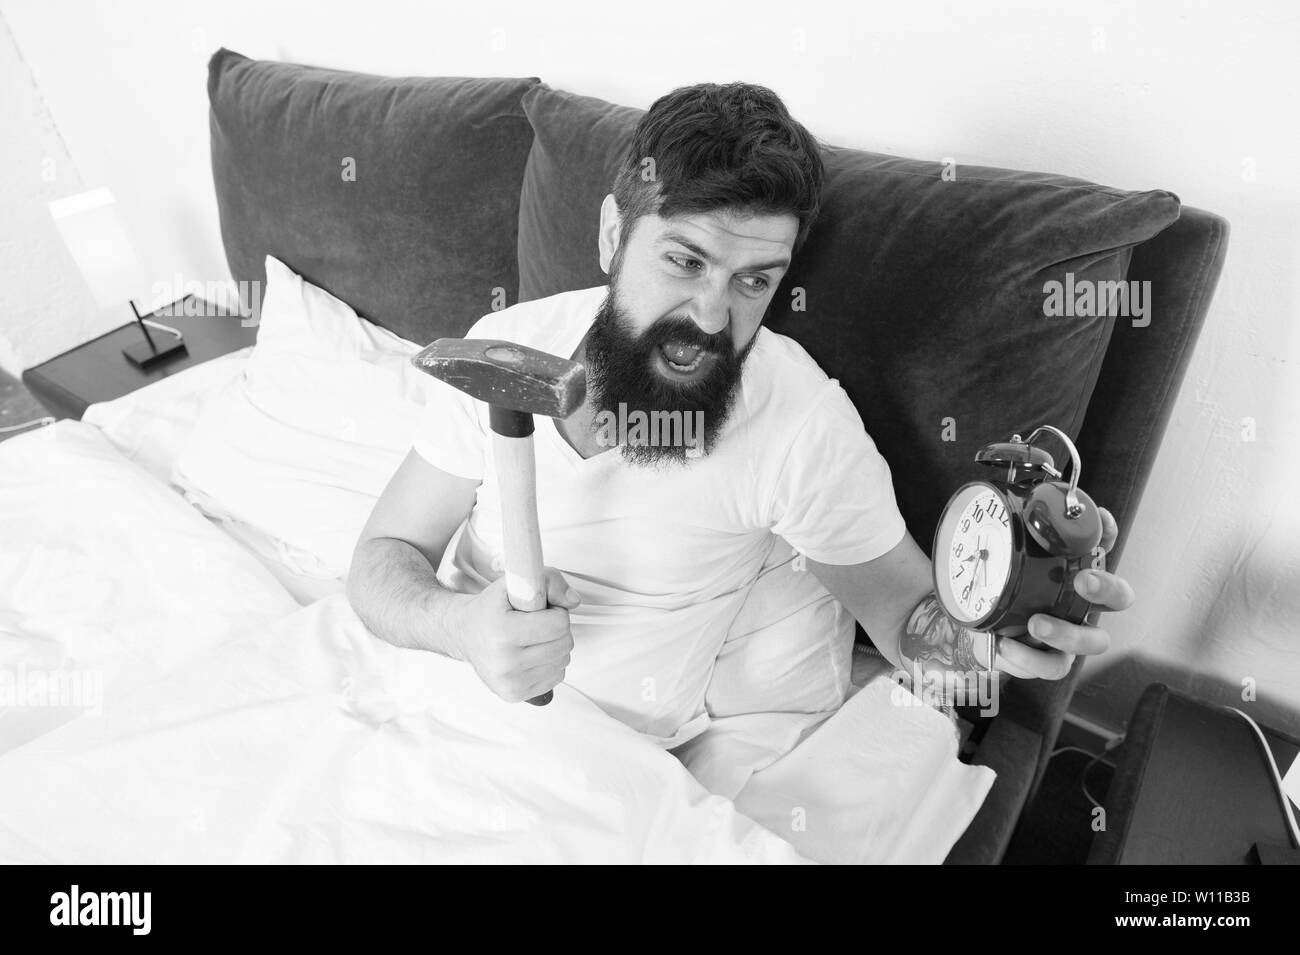 Overslept again. Tips for waking up early. Tips for becoming an early riser. Man bearded hipster sleepy face in bed with alarm clock. Problem with early morning awakening. Get up with alarm clock. - Stock Image